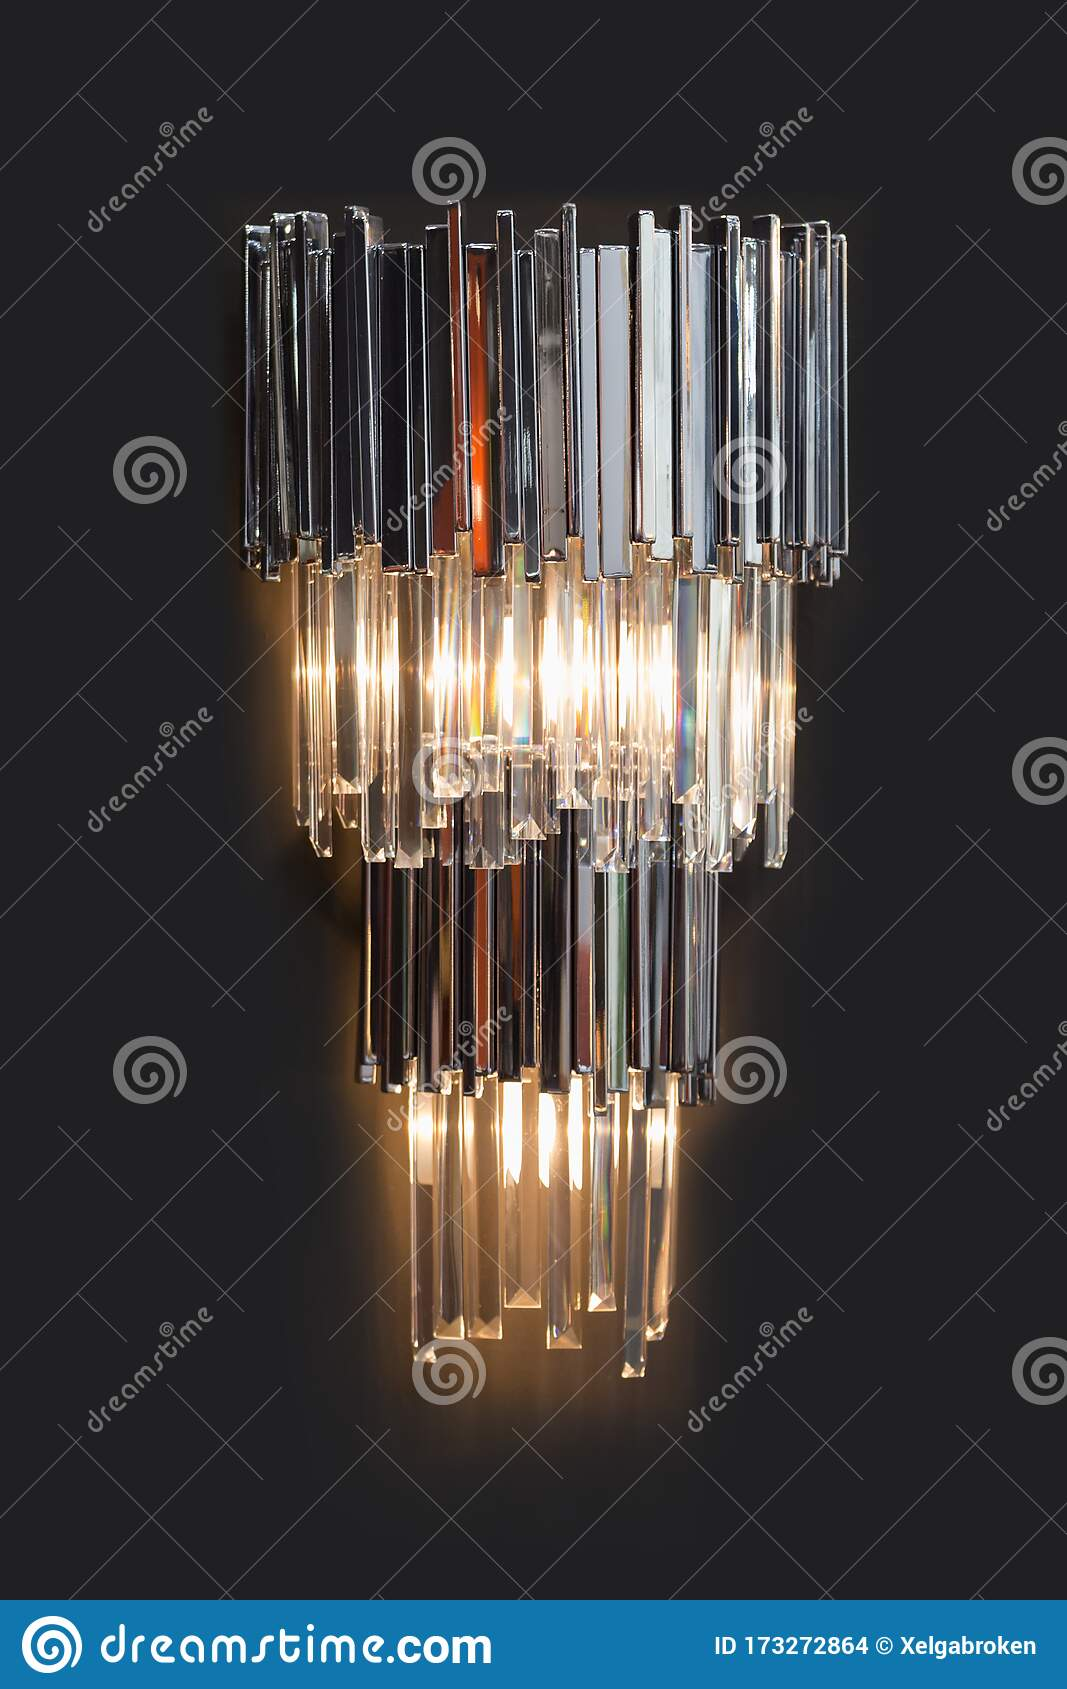 Modern Wall Chandelier Design Illuminated Vintage Wall Lamp With Crystal Lamp Shade Stock Photo Image Of Beautiful Decoration 173272864